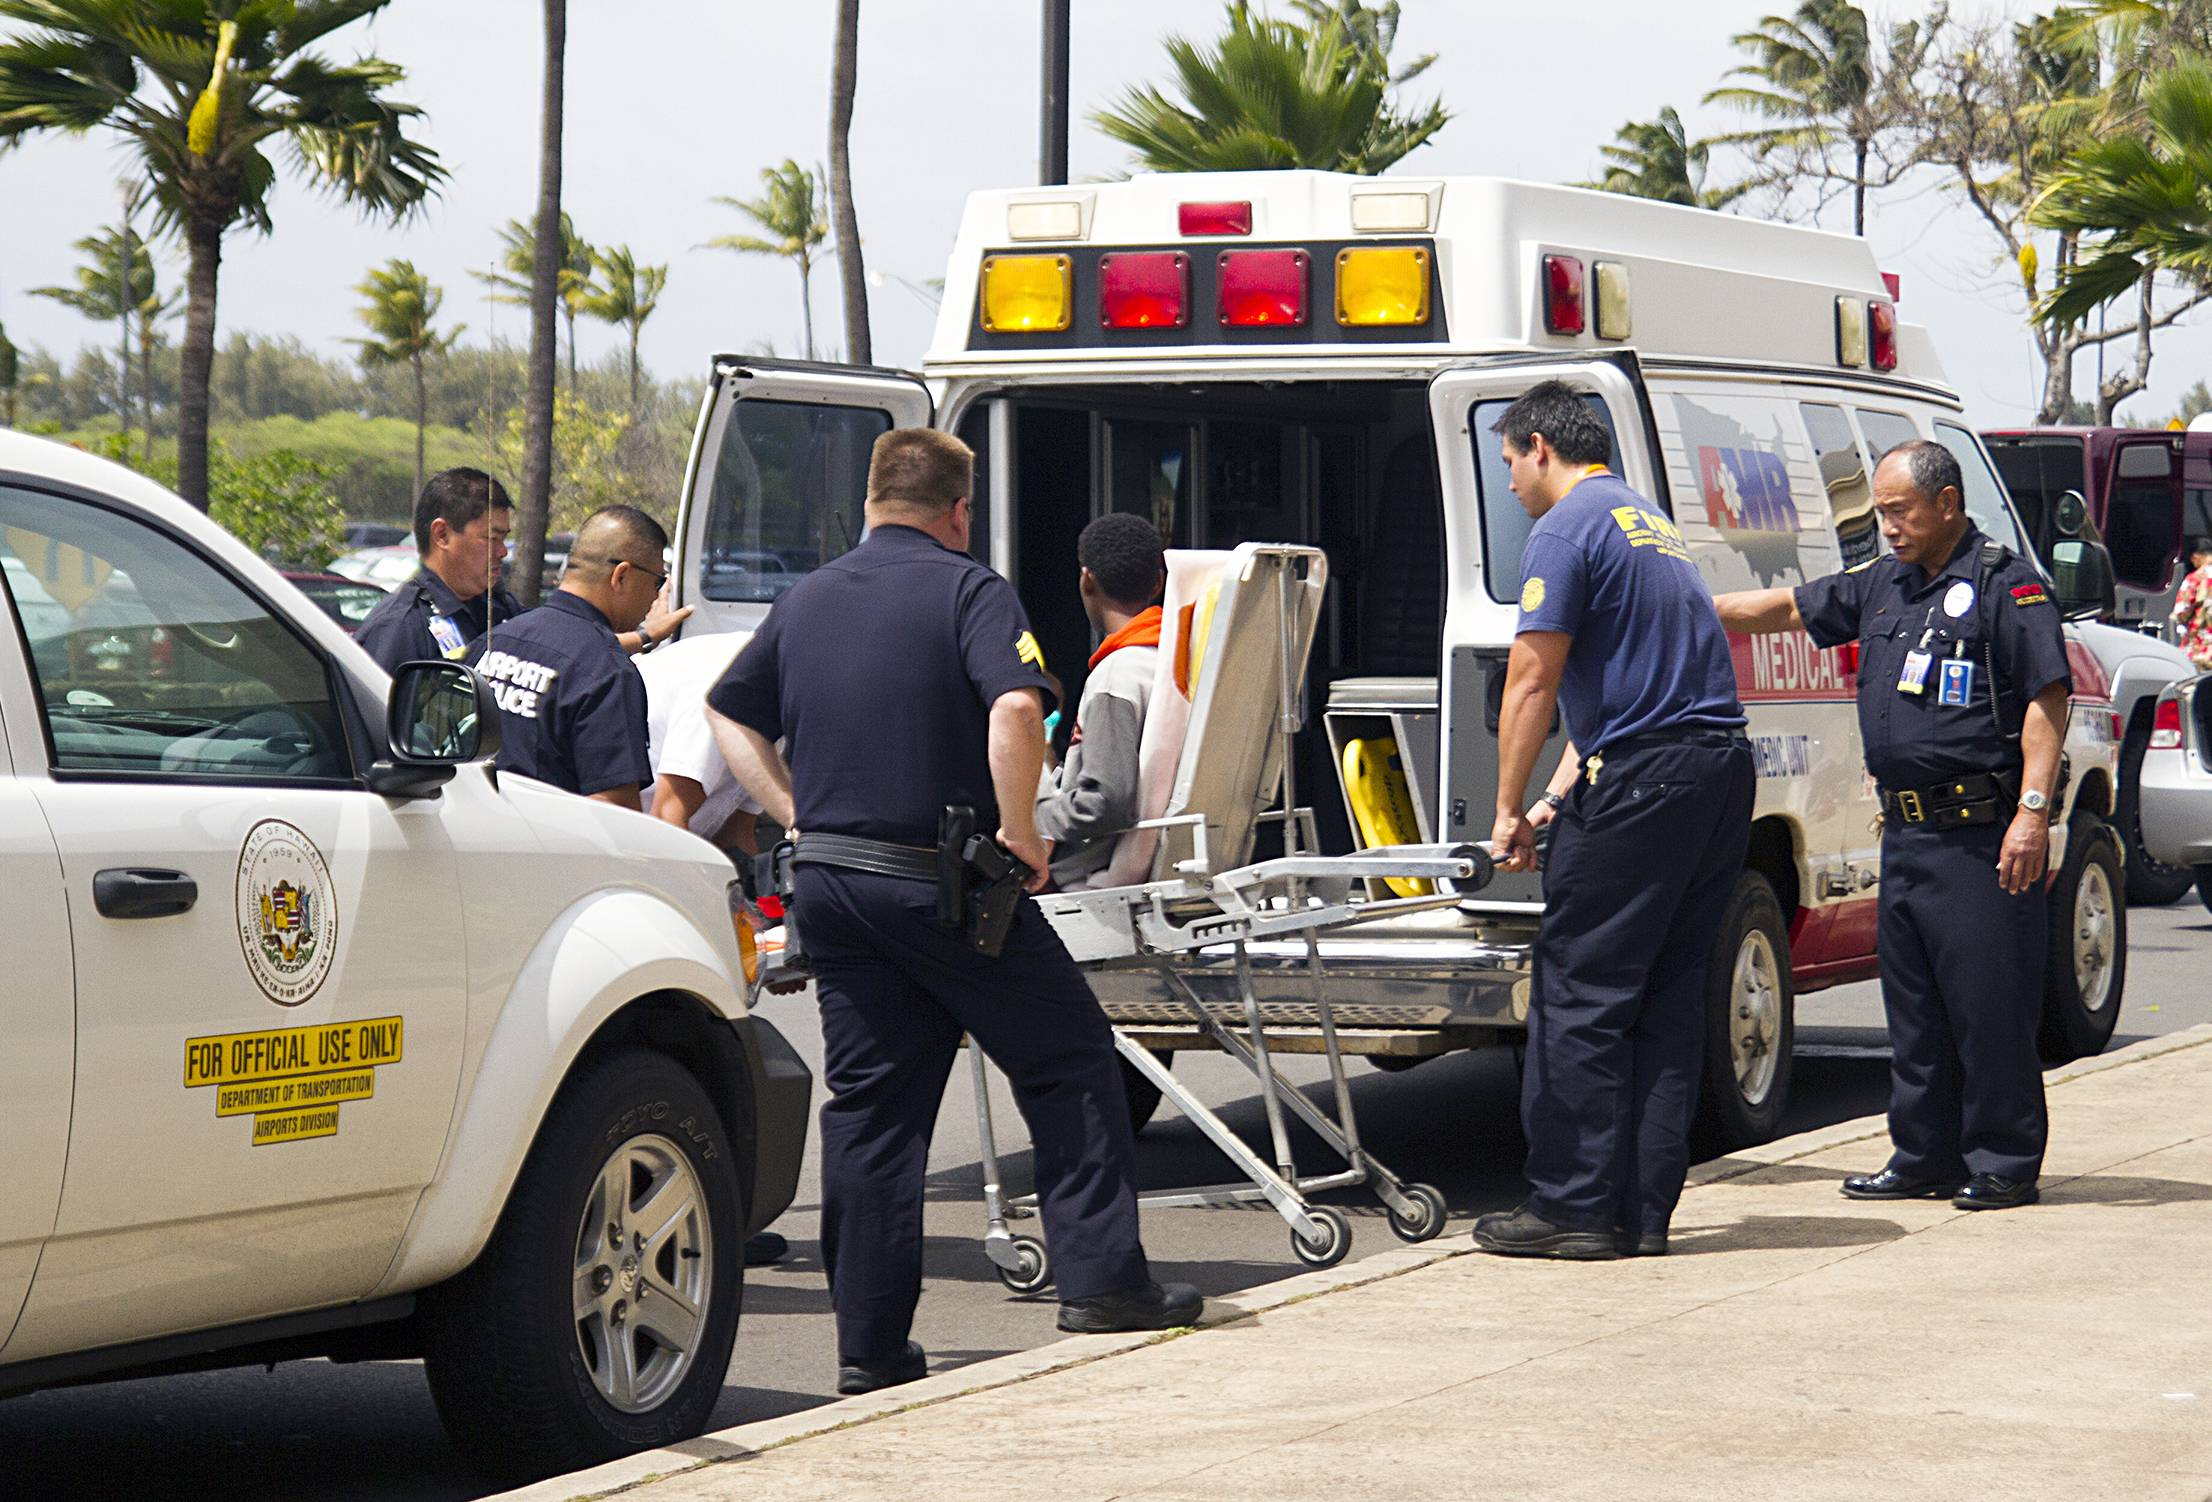 A 15-year-old boy, seen sitting on a stretcher center, who stowed away in the wheel well of a flight from San Jose, Calif., to Hawaii is loaded into an ambulance at Kahului Airport in Kahului, Maui, April 20.